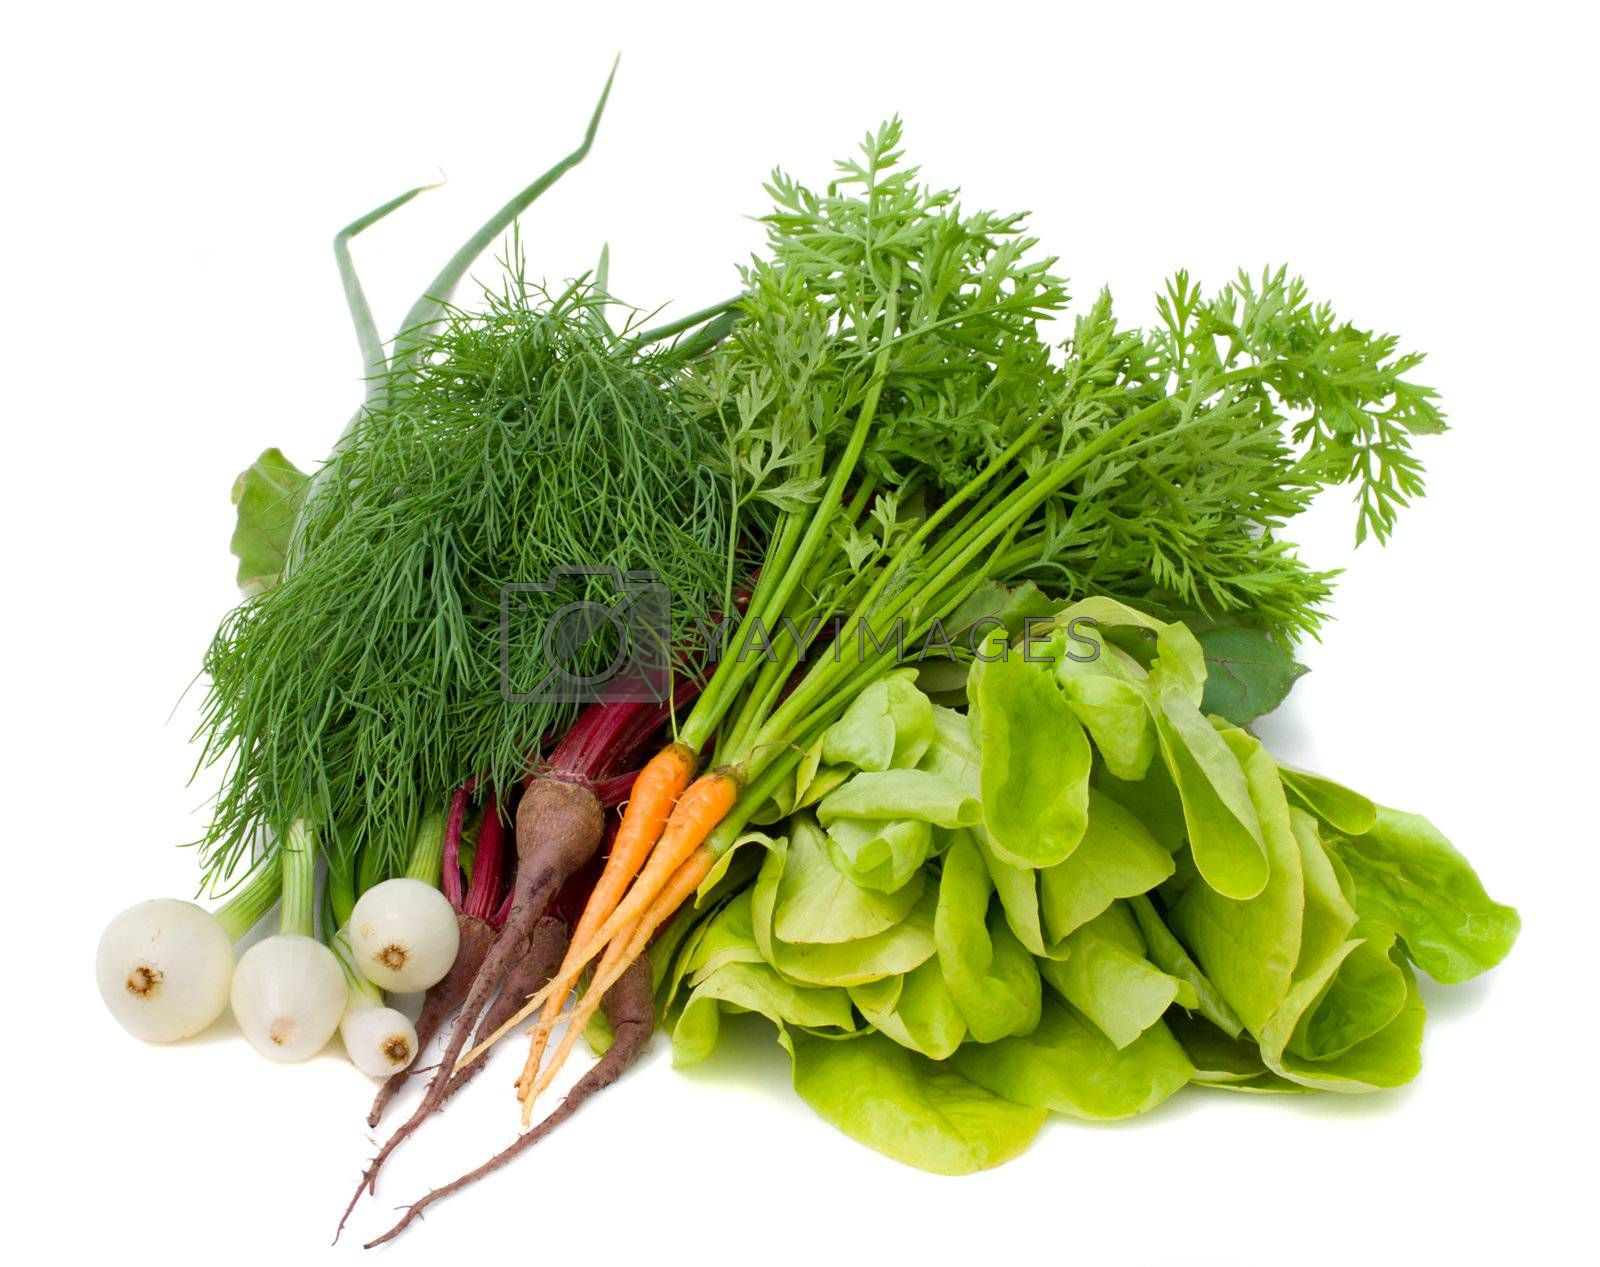 Royalty free image of heap of new vegetables by Alekcey